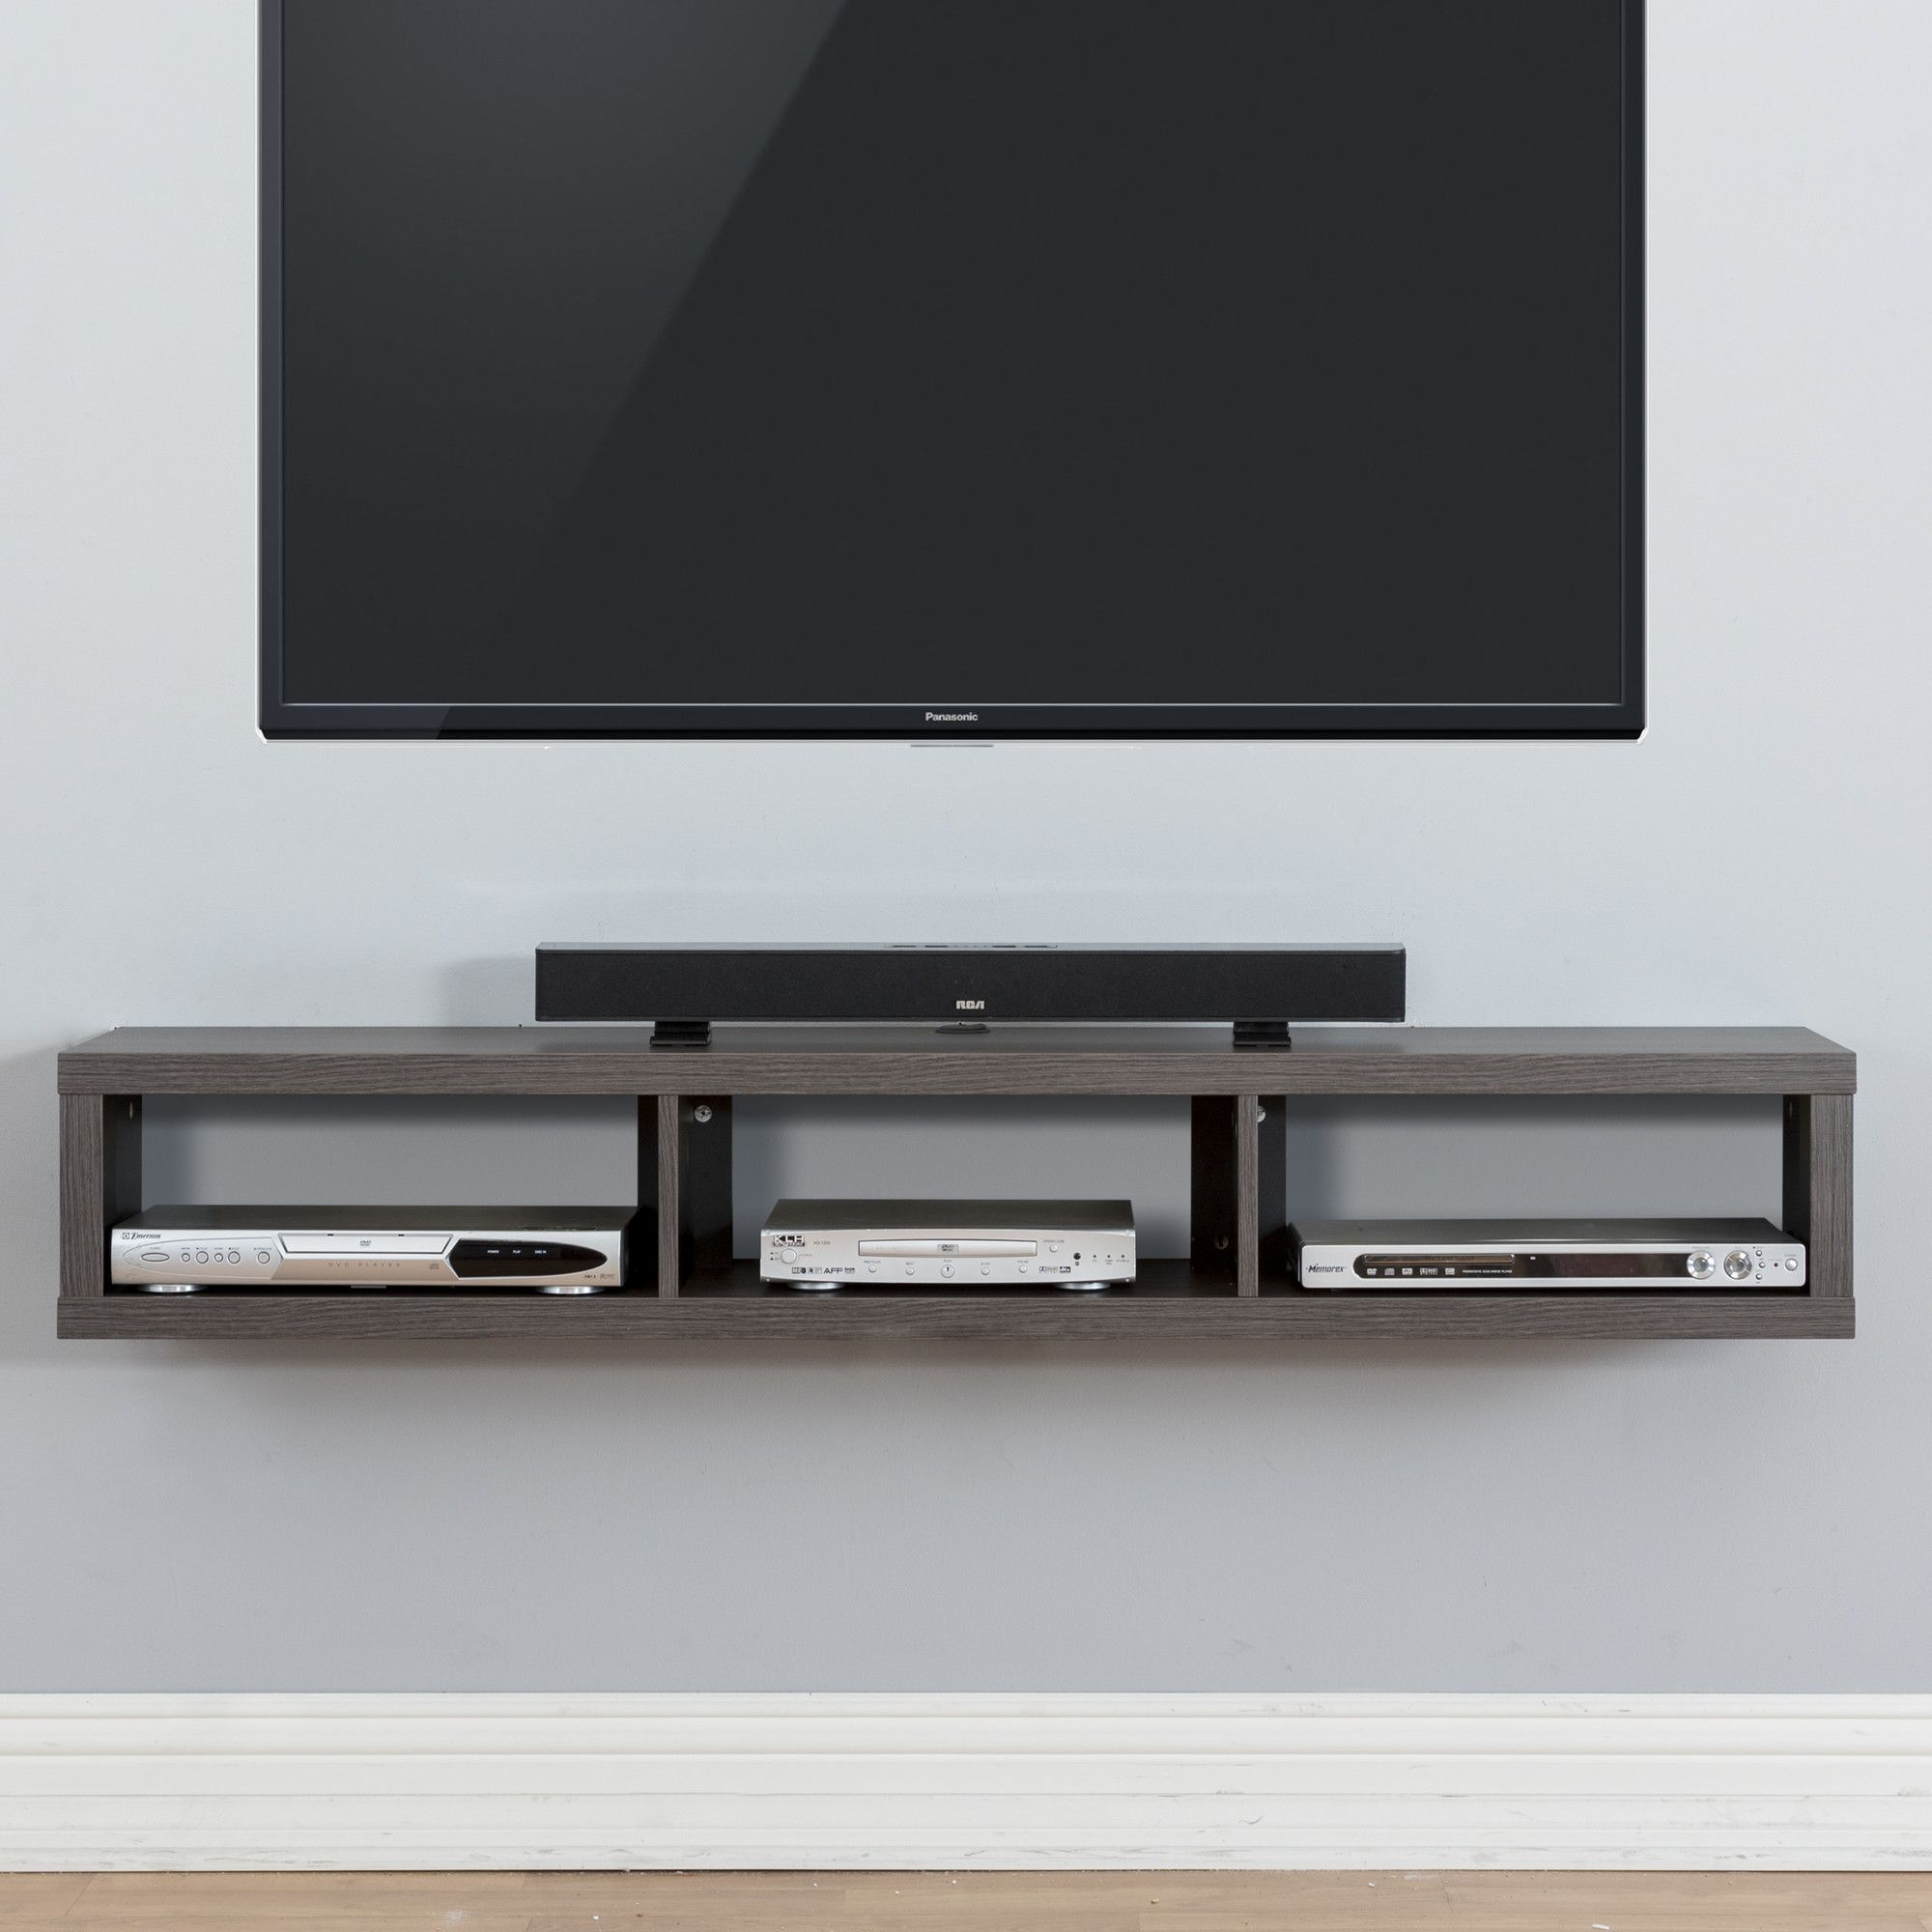 Panasonic Tv Meubel.Best Pallet Projects Wall Mount Tv Stand Wall Mounted Tv Wall